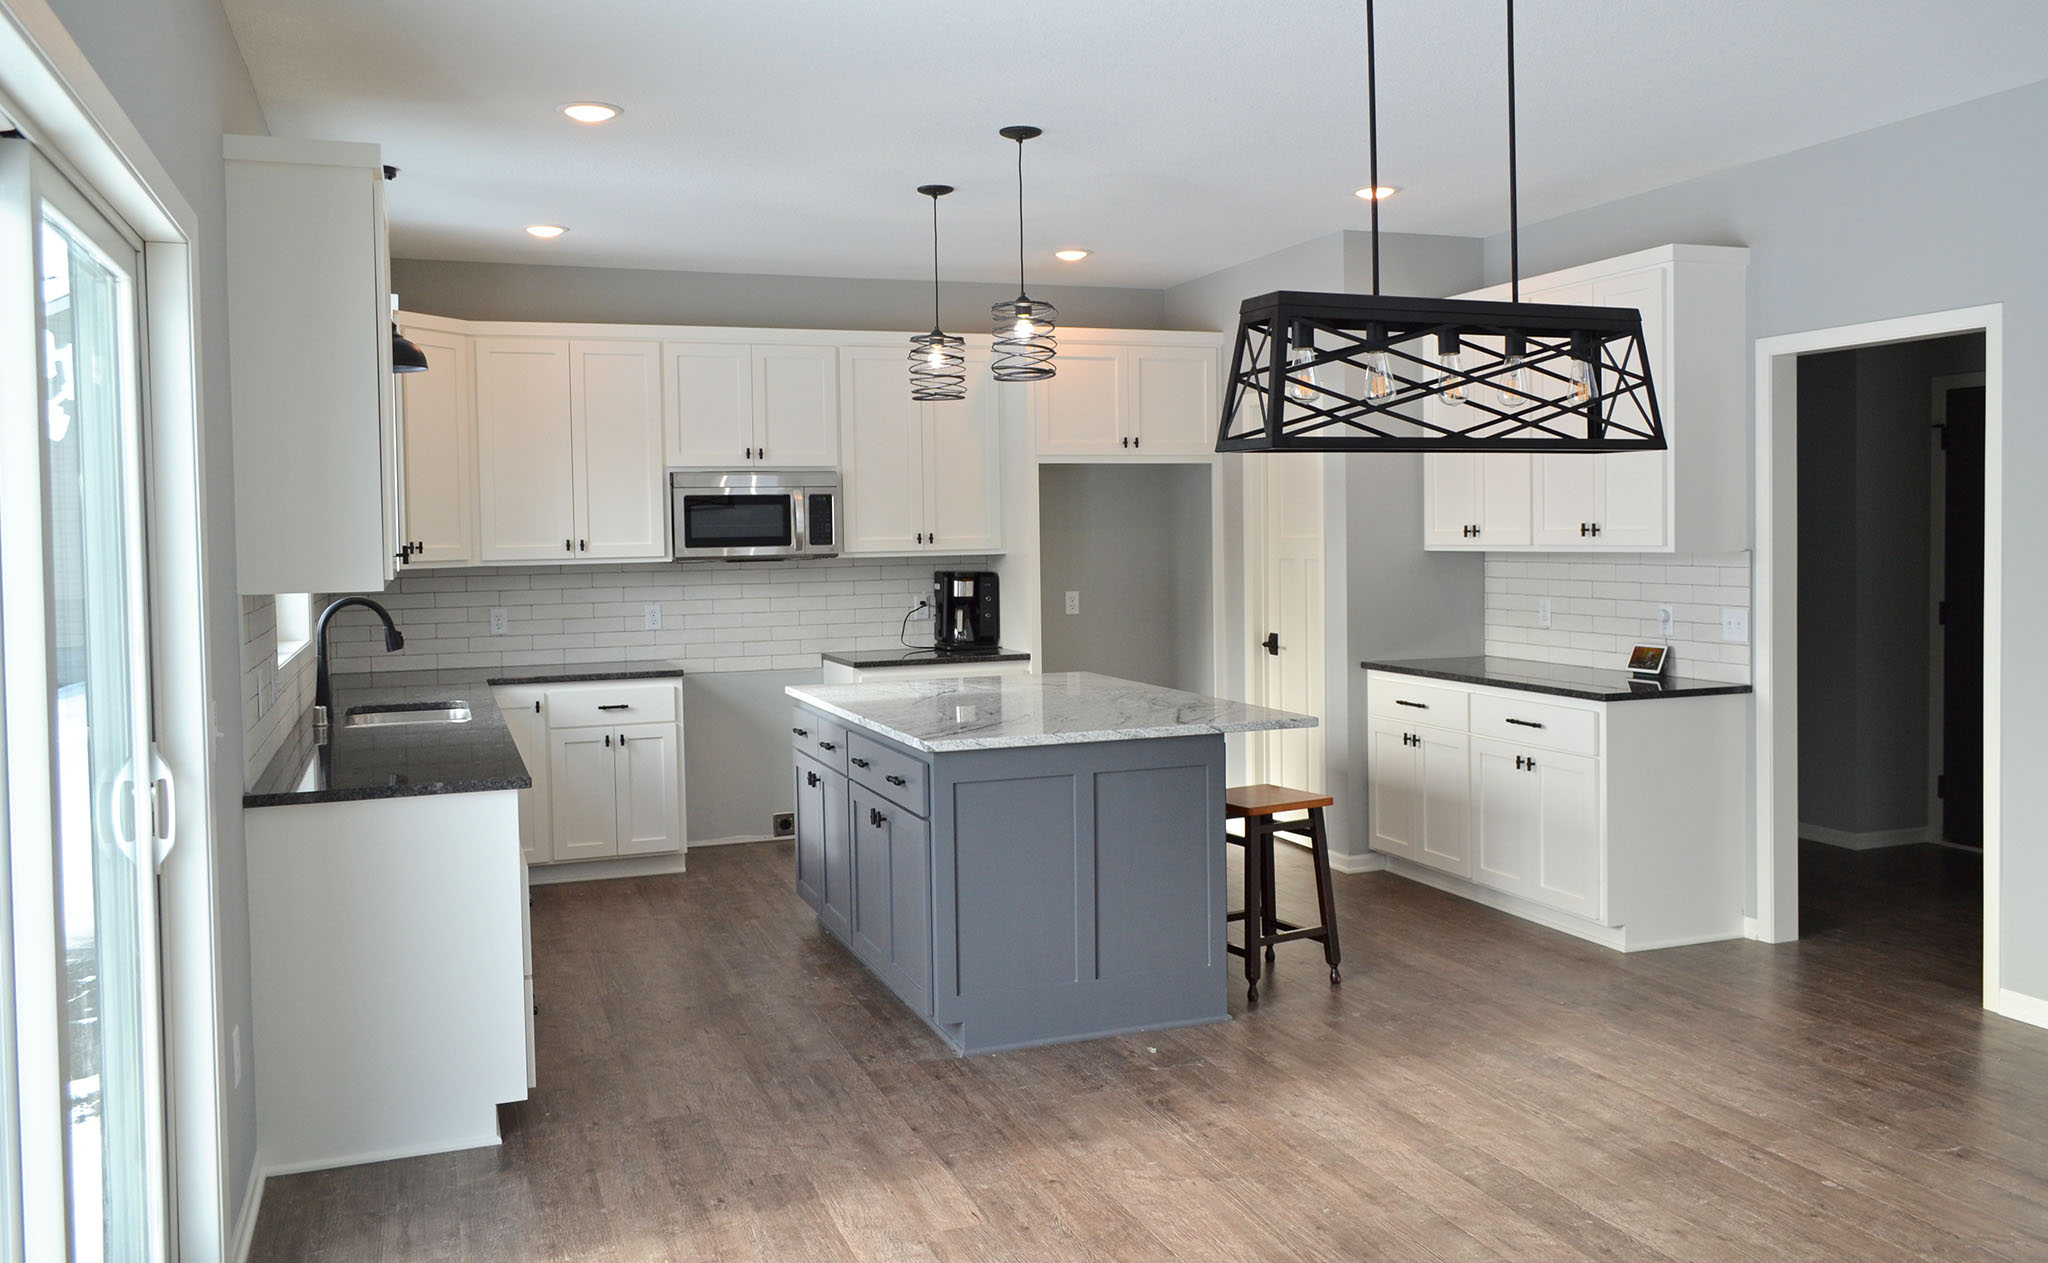 Large kitchen with white custom cabinets, gray island and granite countertops